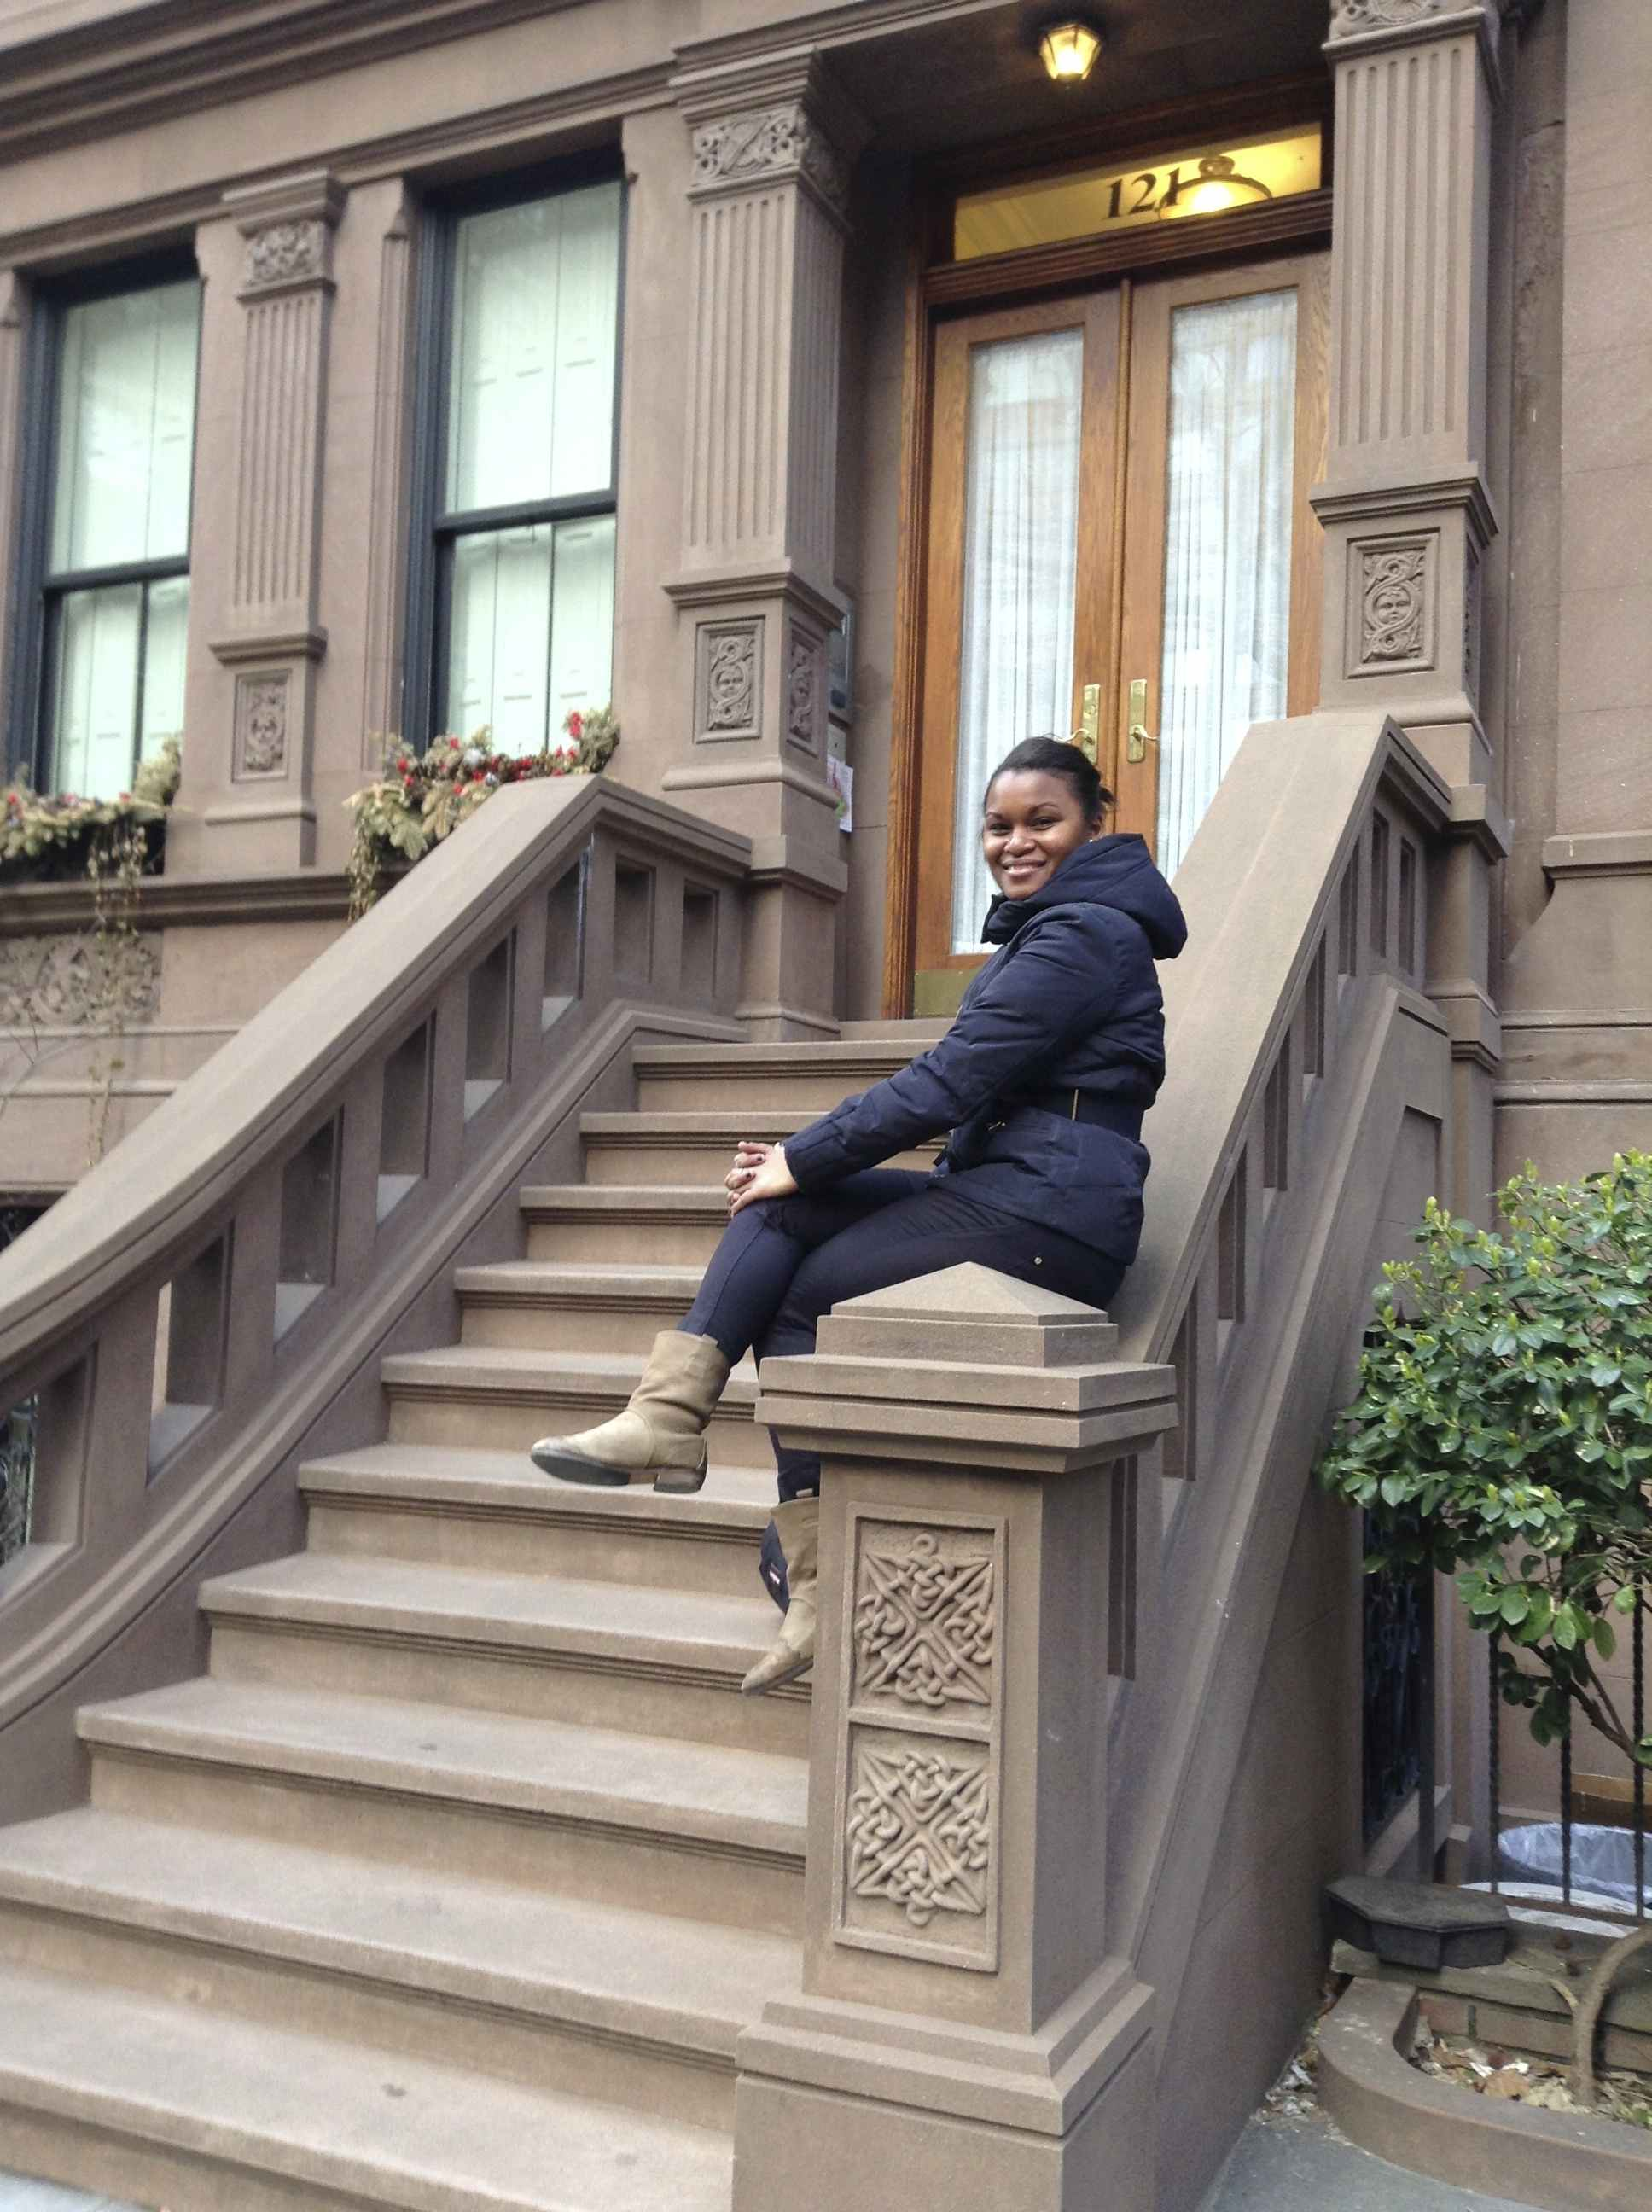 Brownstones-de-New-York Les brownstones à New York : mon coup de coeur !